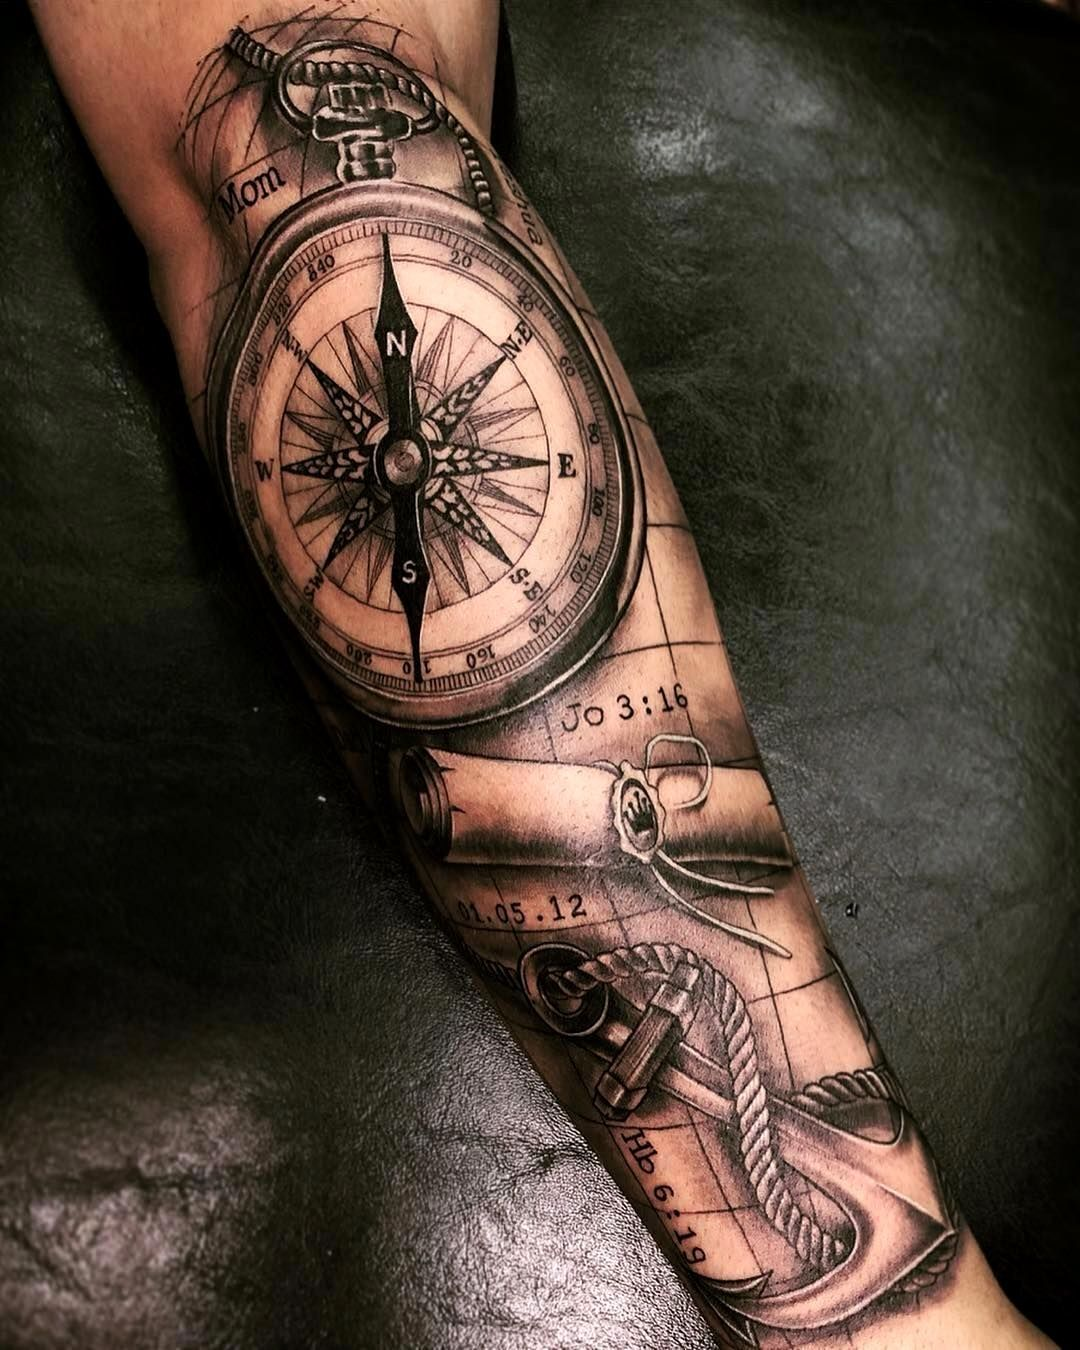 Best Tattoos Gallery Gallery Octopustattoosleeveleg Tattoos Nautical Tattoo Sleeve Sleeve Tattoos Tattoos For Guys